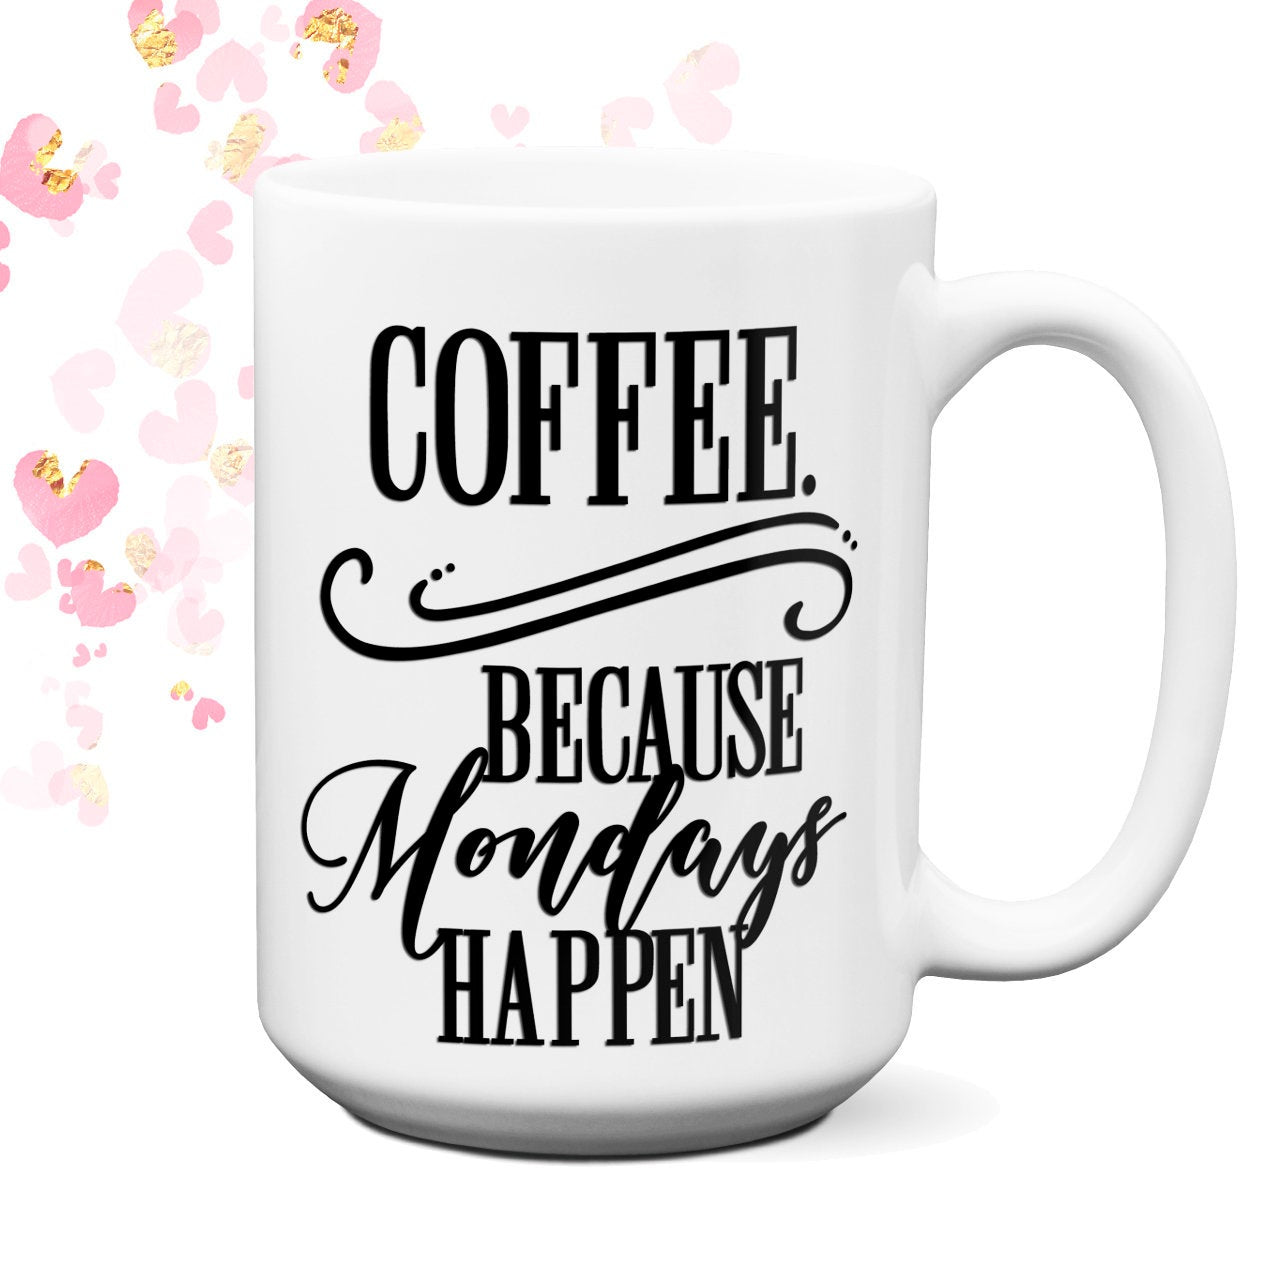 Large Funny Coffee Mugs with Sayings | Funny Coffee Cups | Coffee Lover Gift | Gift For Her | Gift For Him | Birthday | Girl Boss | Mom Gift